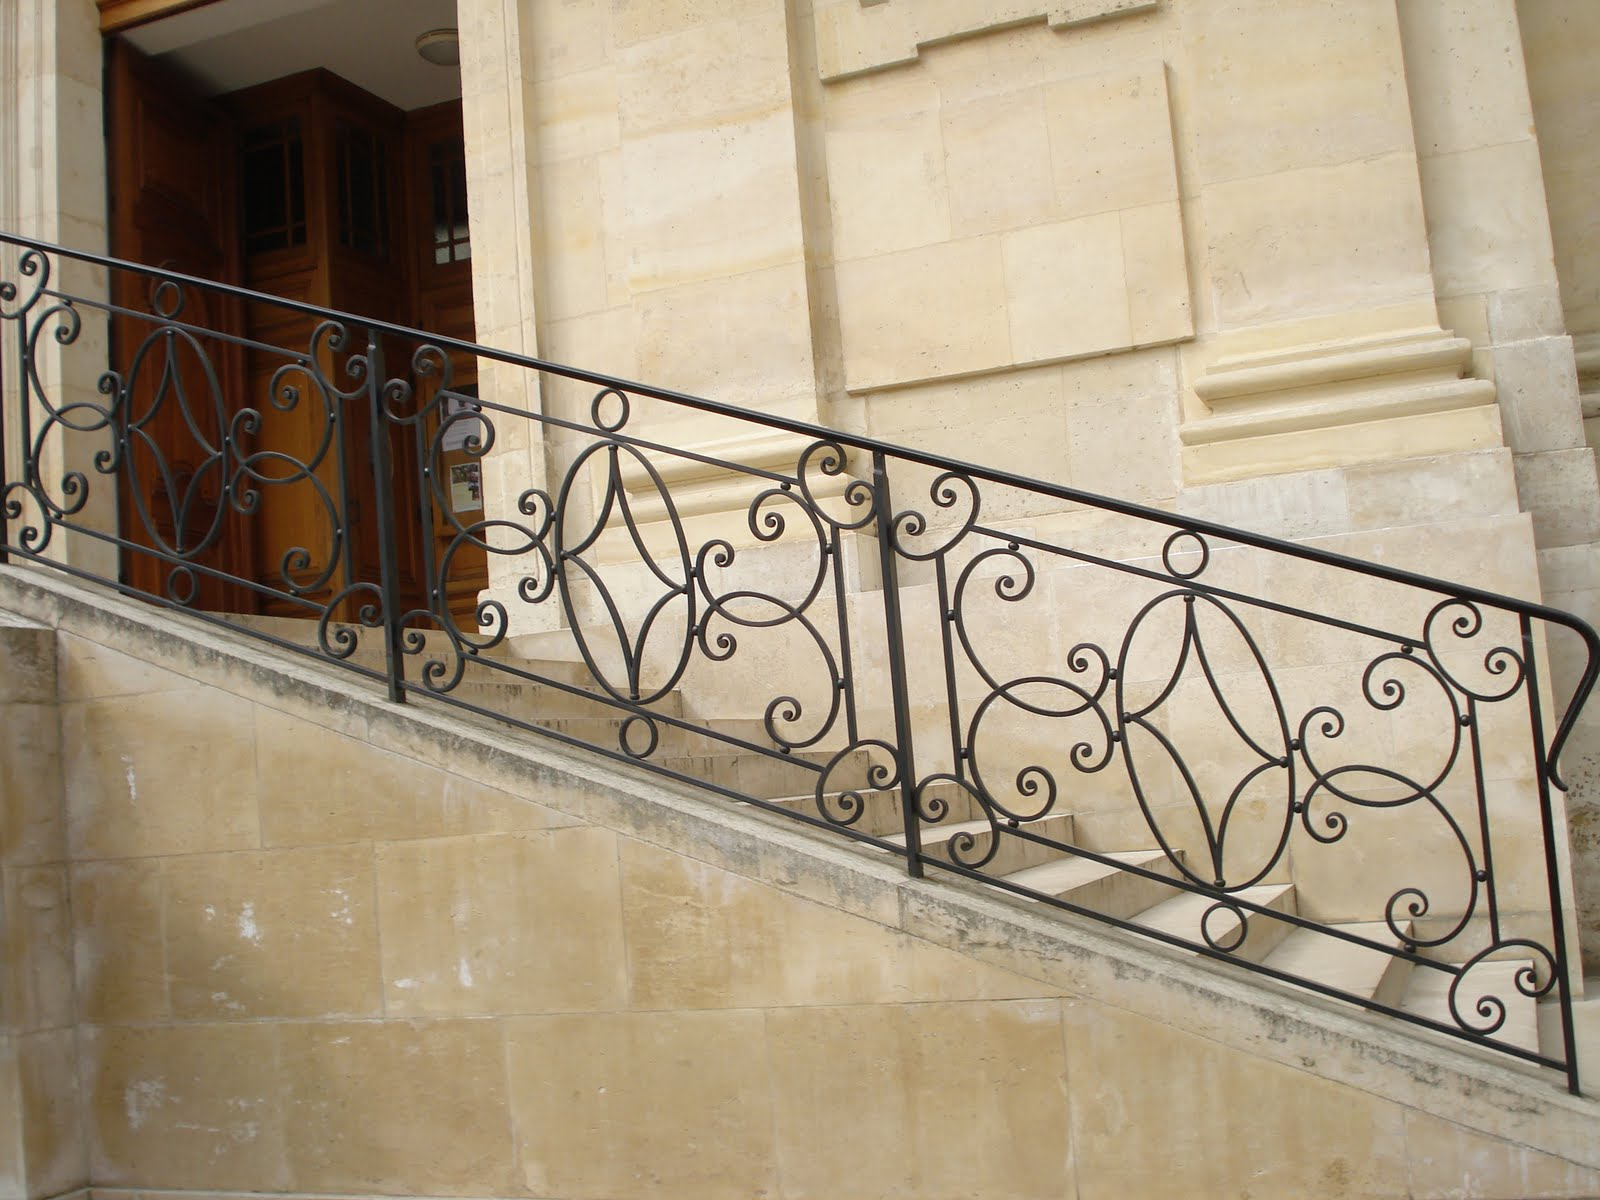 STARFISH DESIGNS: Wrought Iron Accents